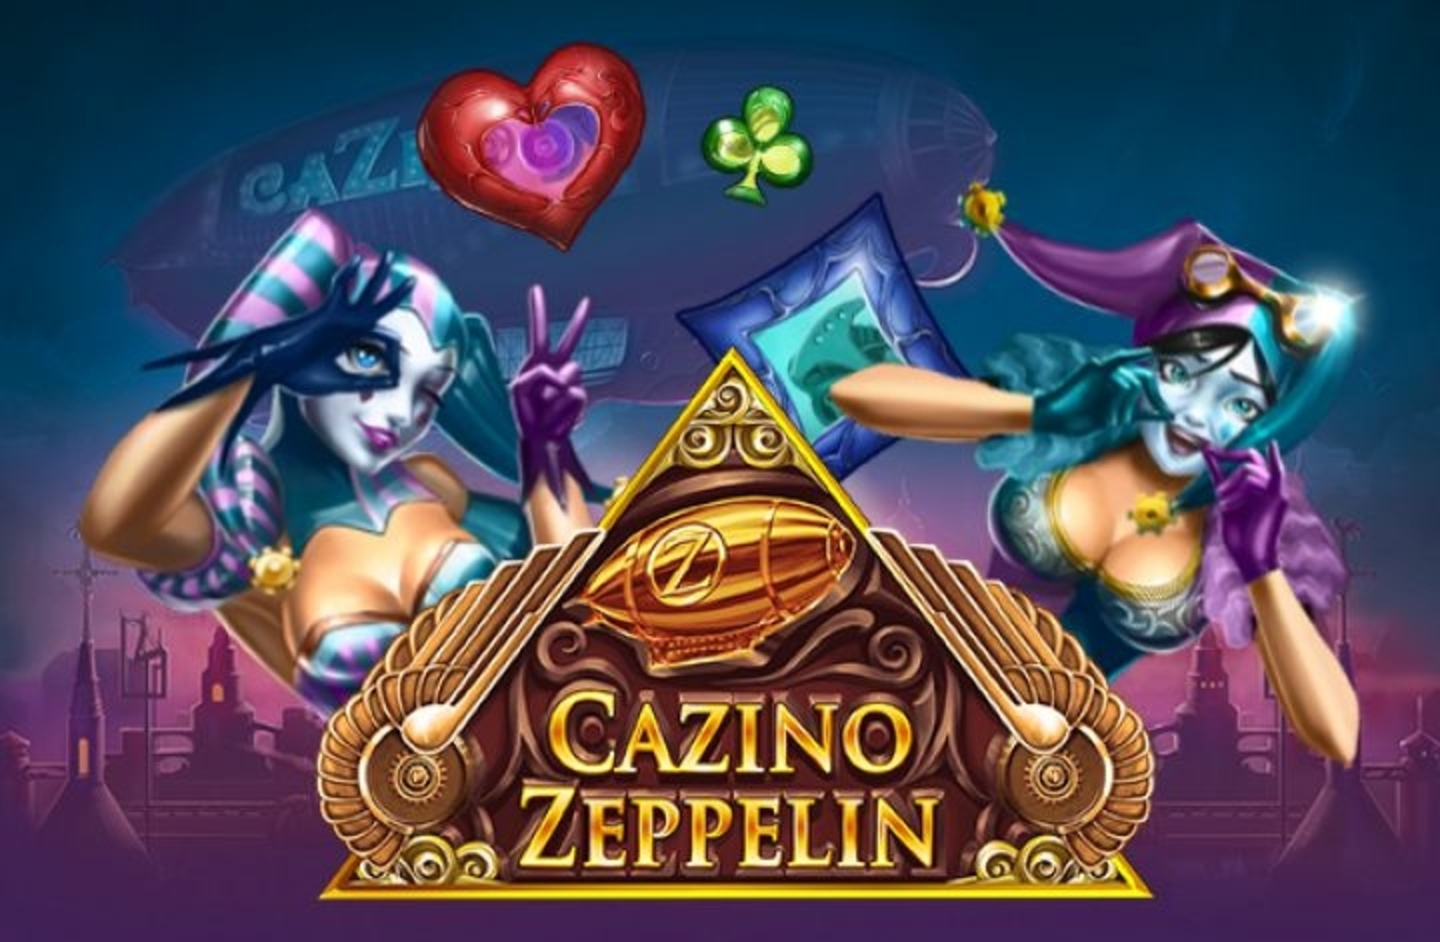 The Cazino Zeppelin Online Slot Demo Game by Yggdrasil